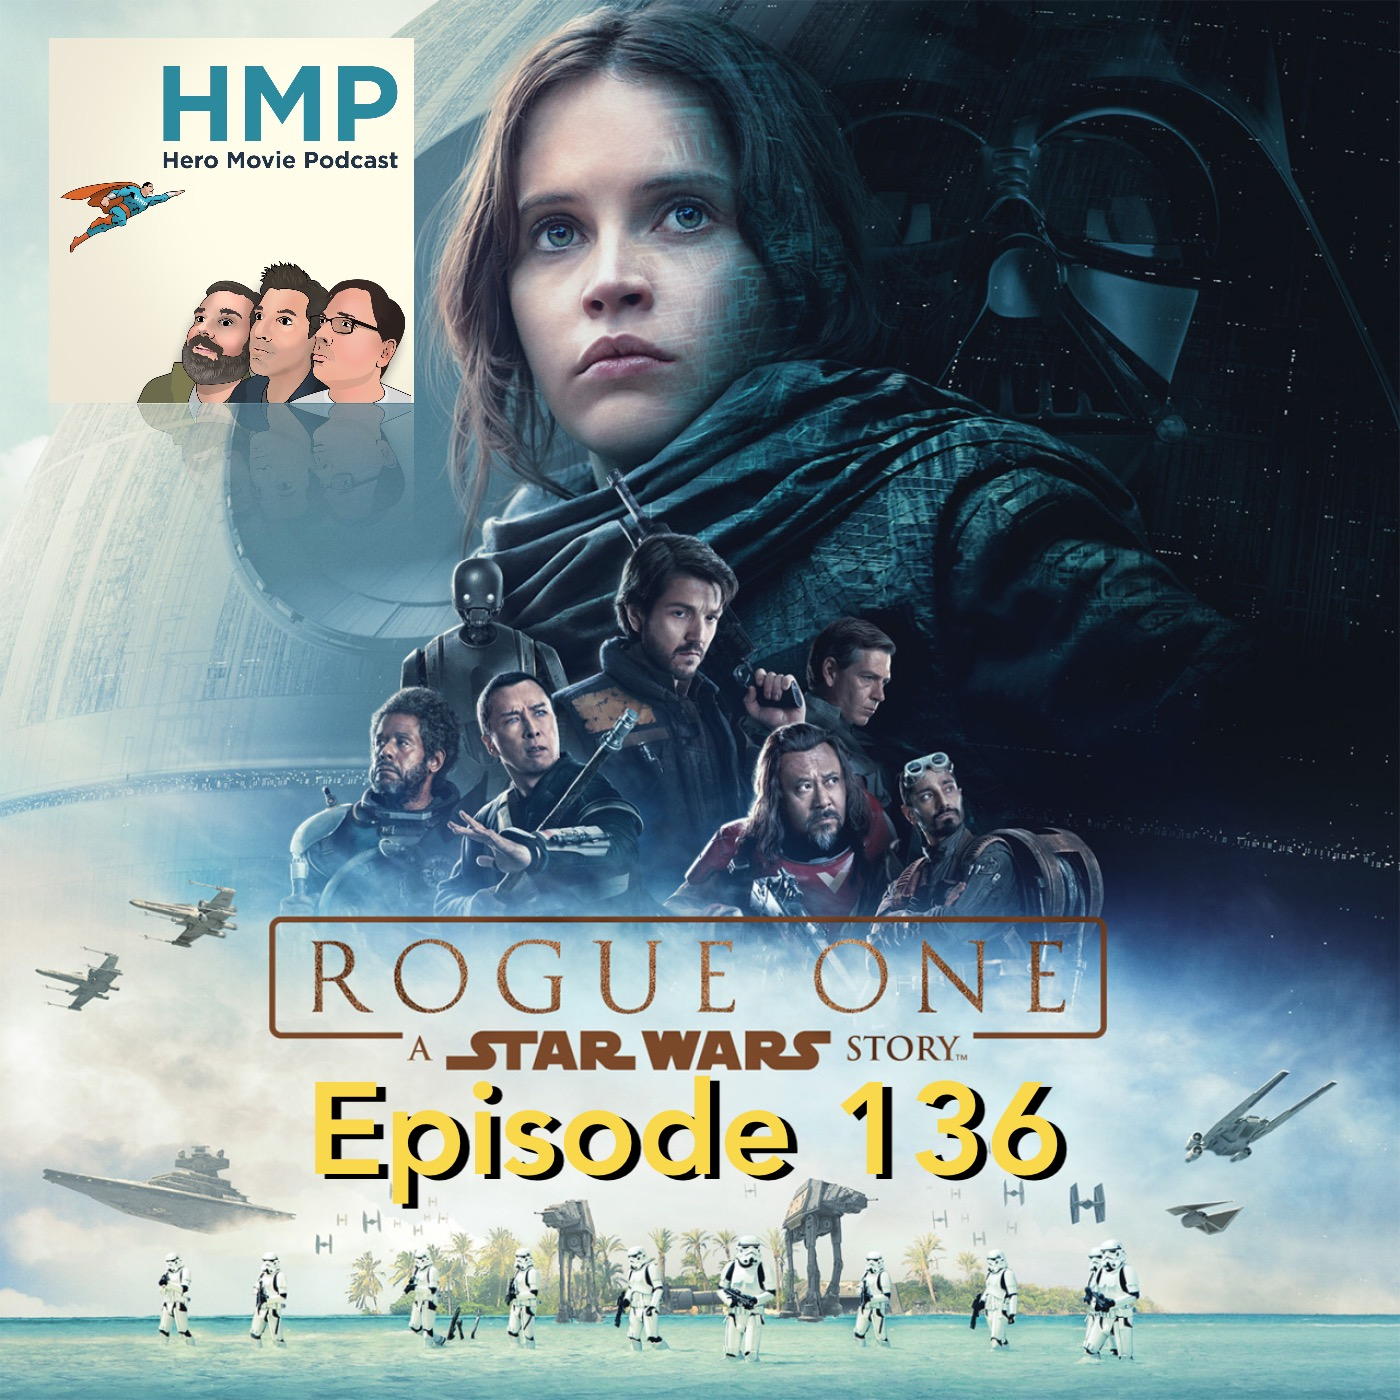 Episode 136- Rogue One- A Star Wars Story